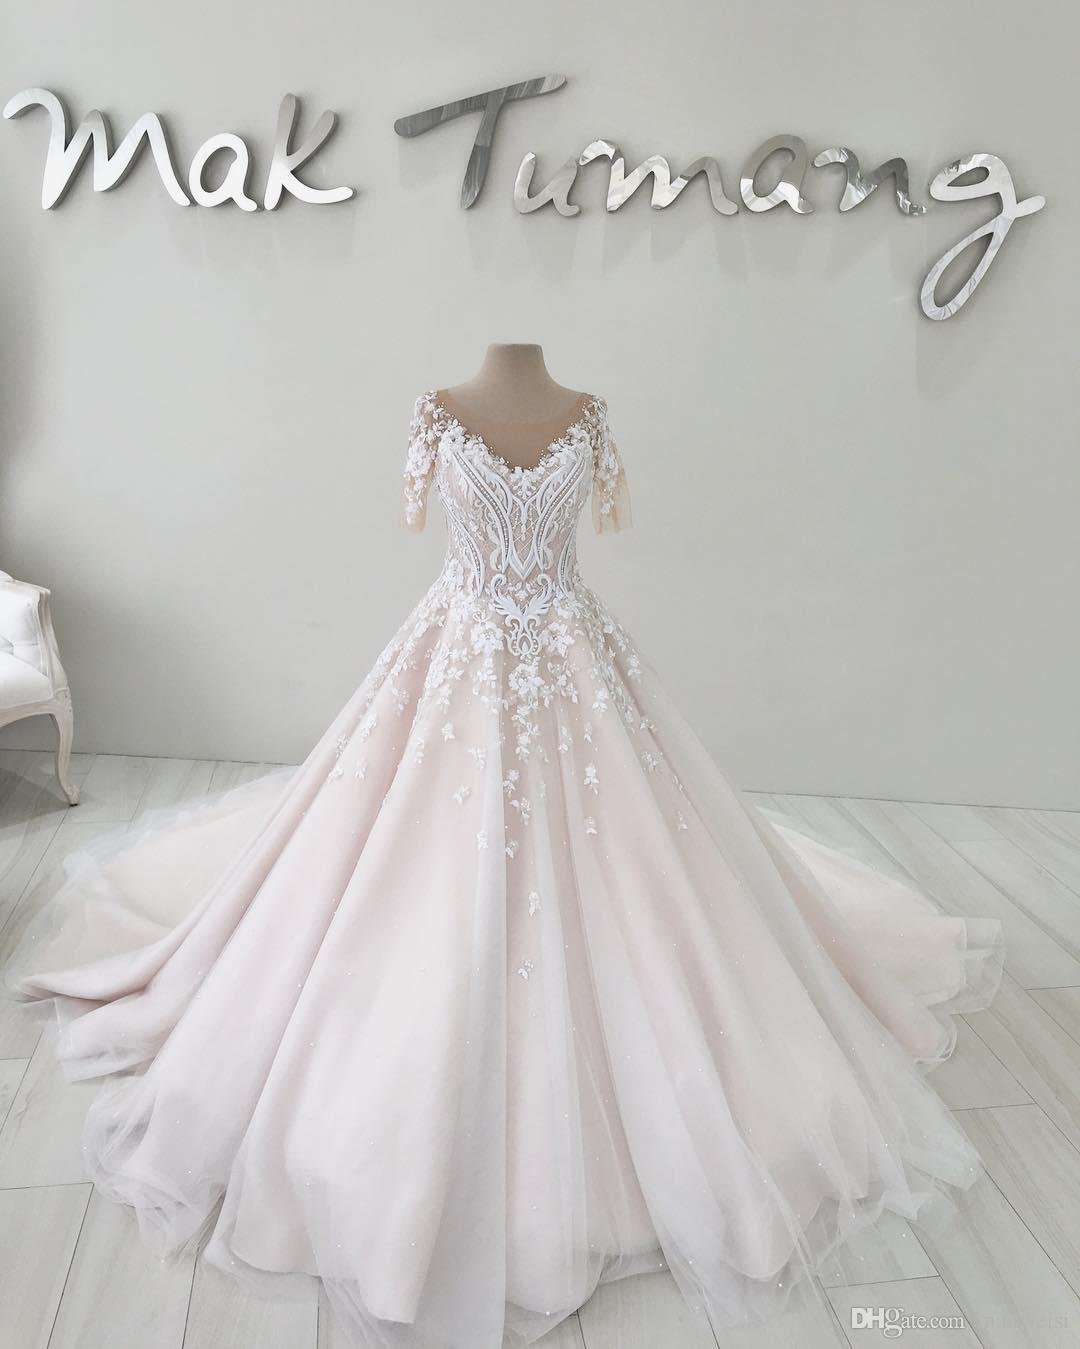 Luxury Light Pink Tulle Wedding Dresses 3D-Floral Appliques Short Sleeve Court Train Lace Bridal Gowns Beads Plus Size Wedding Dress